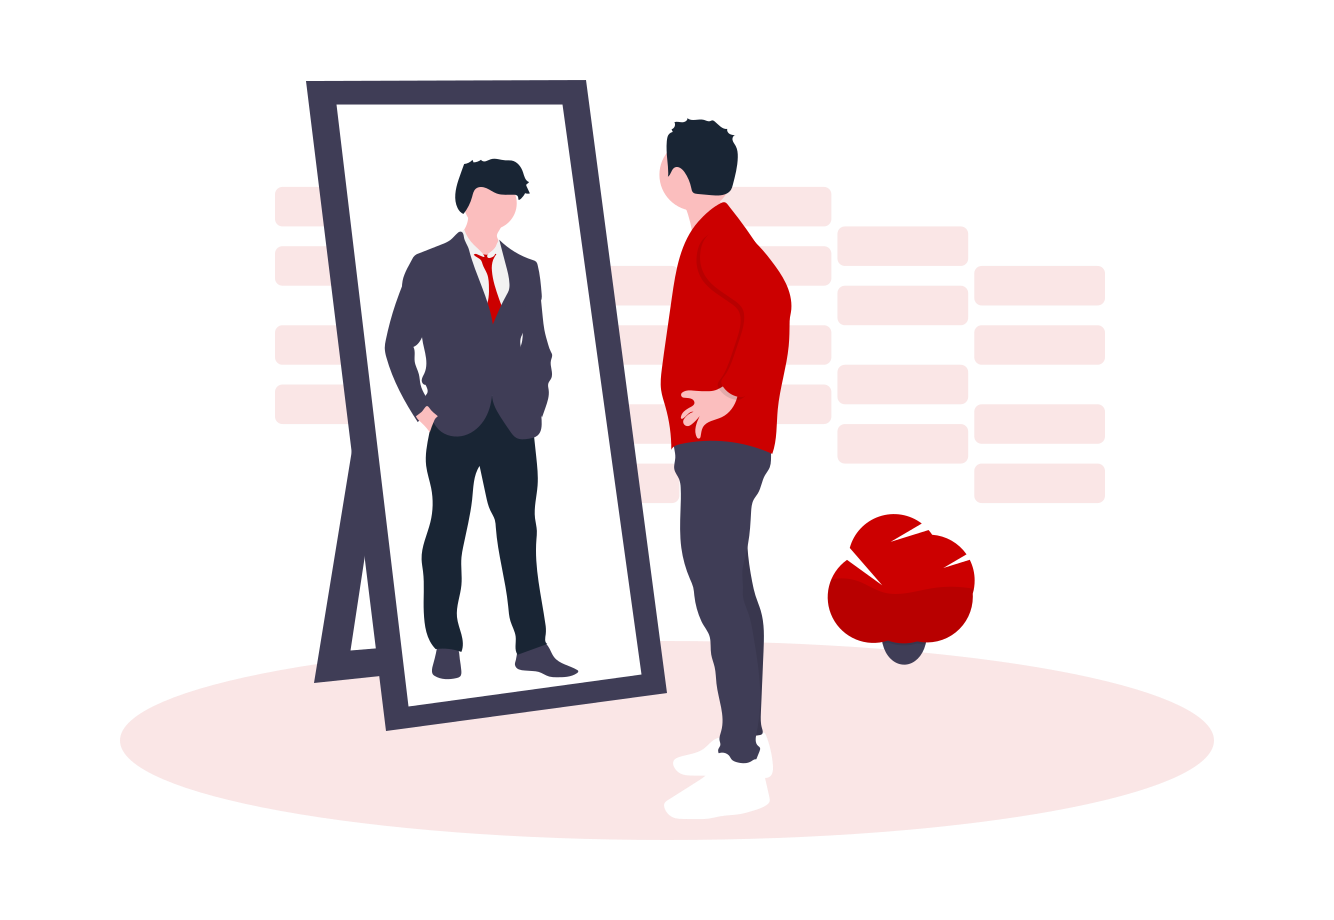 Person in red top and jeans, looking into a mirror and seeing themselves in a business suit